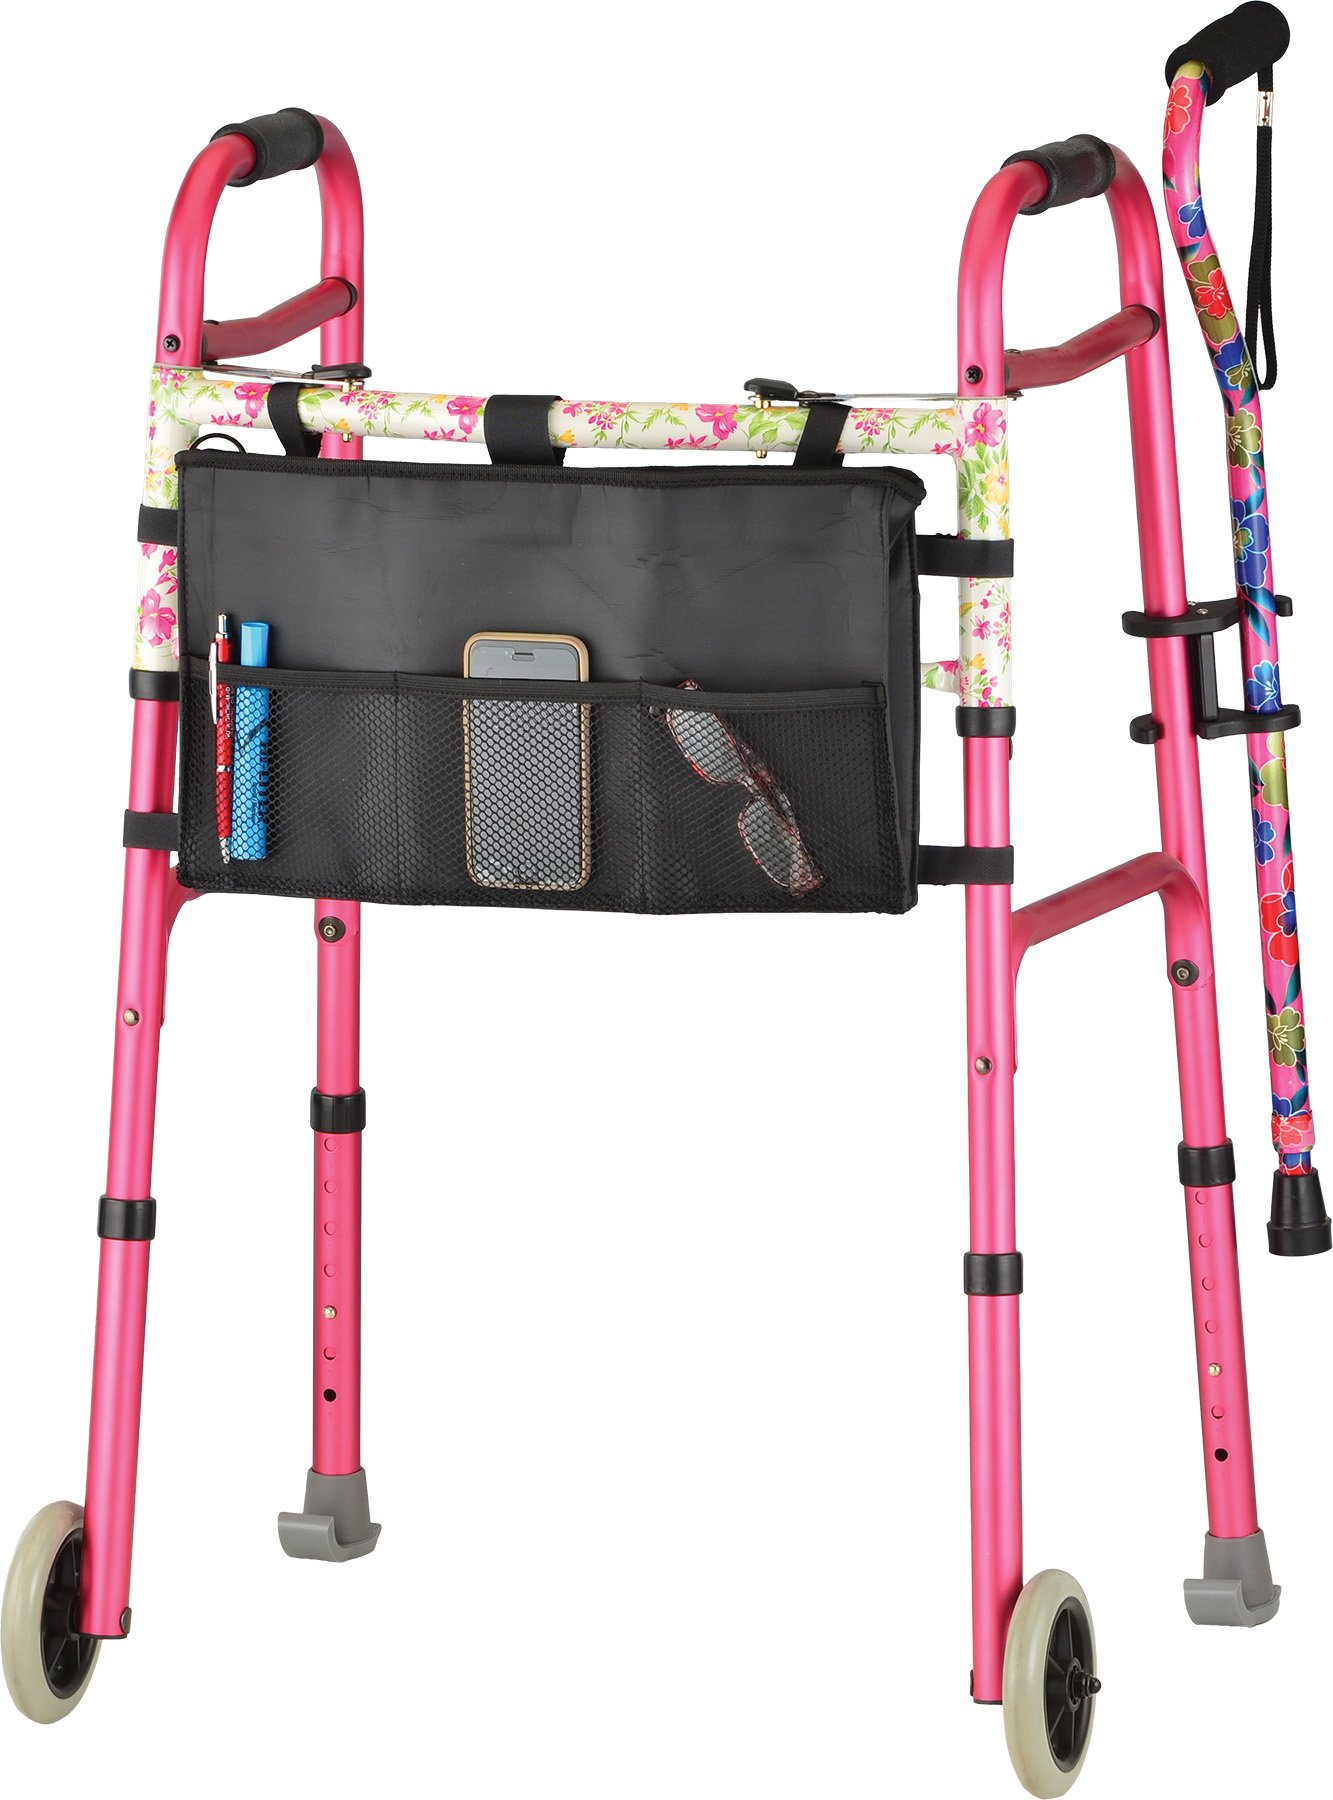 NOVA Designer Folding Walker with Cane and Accessories, Pink